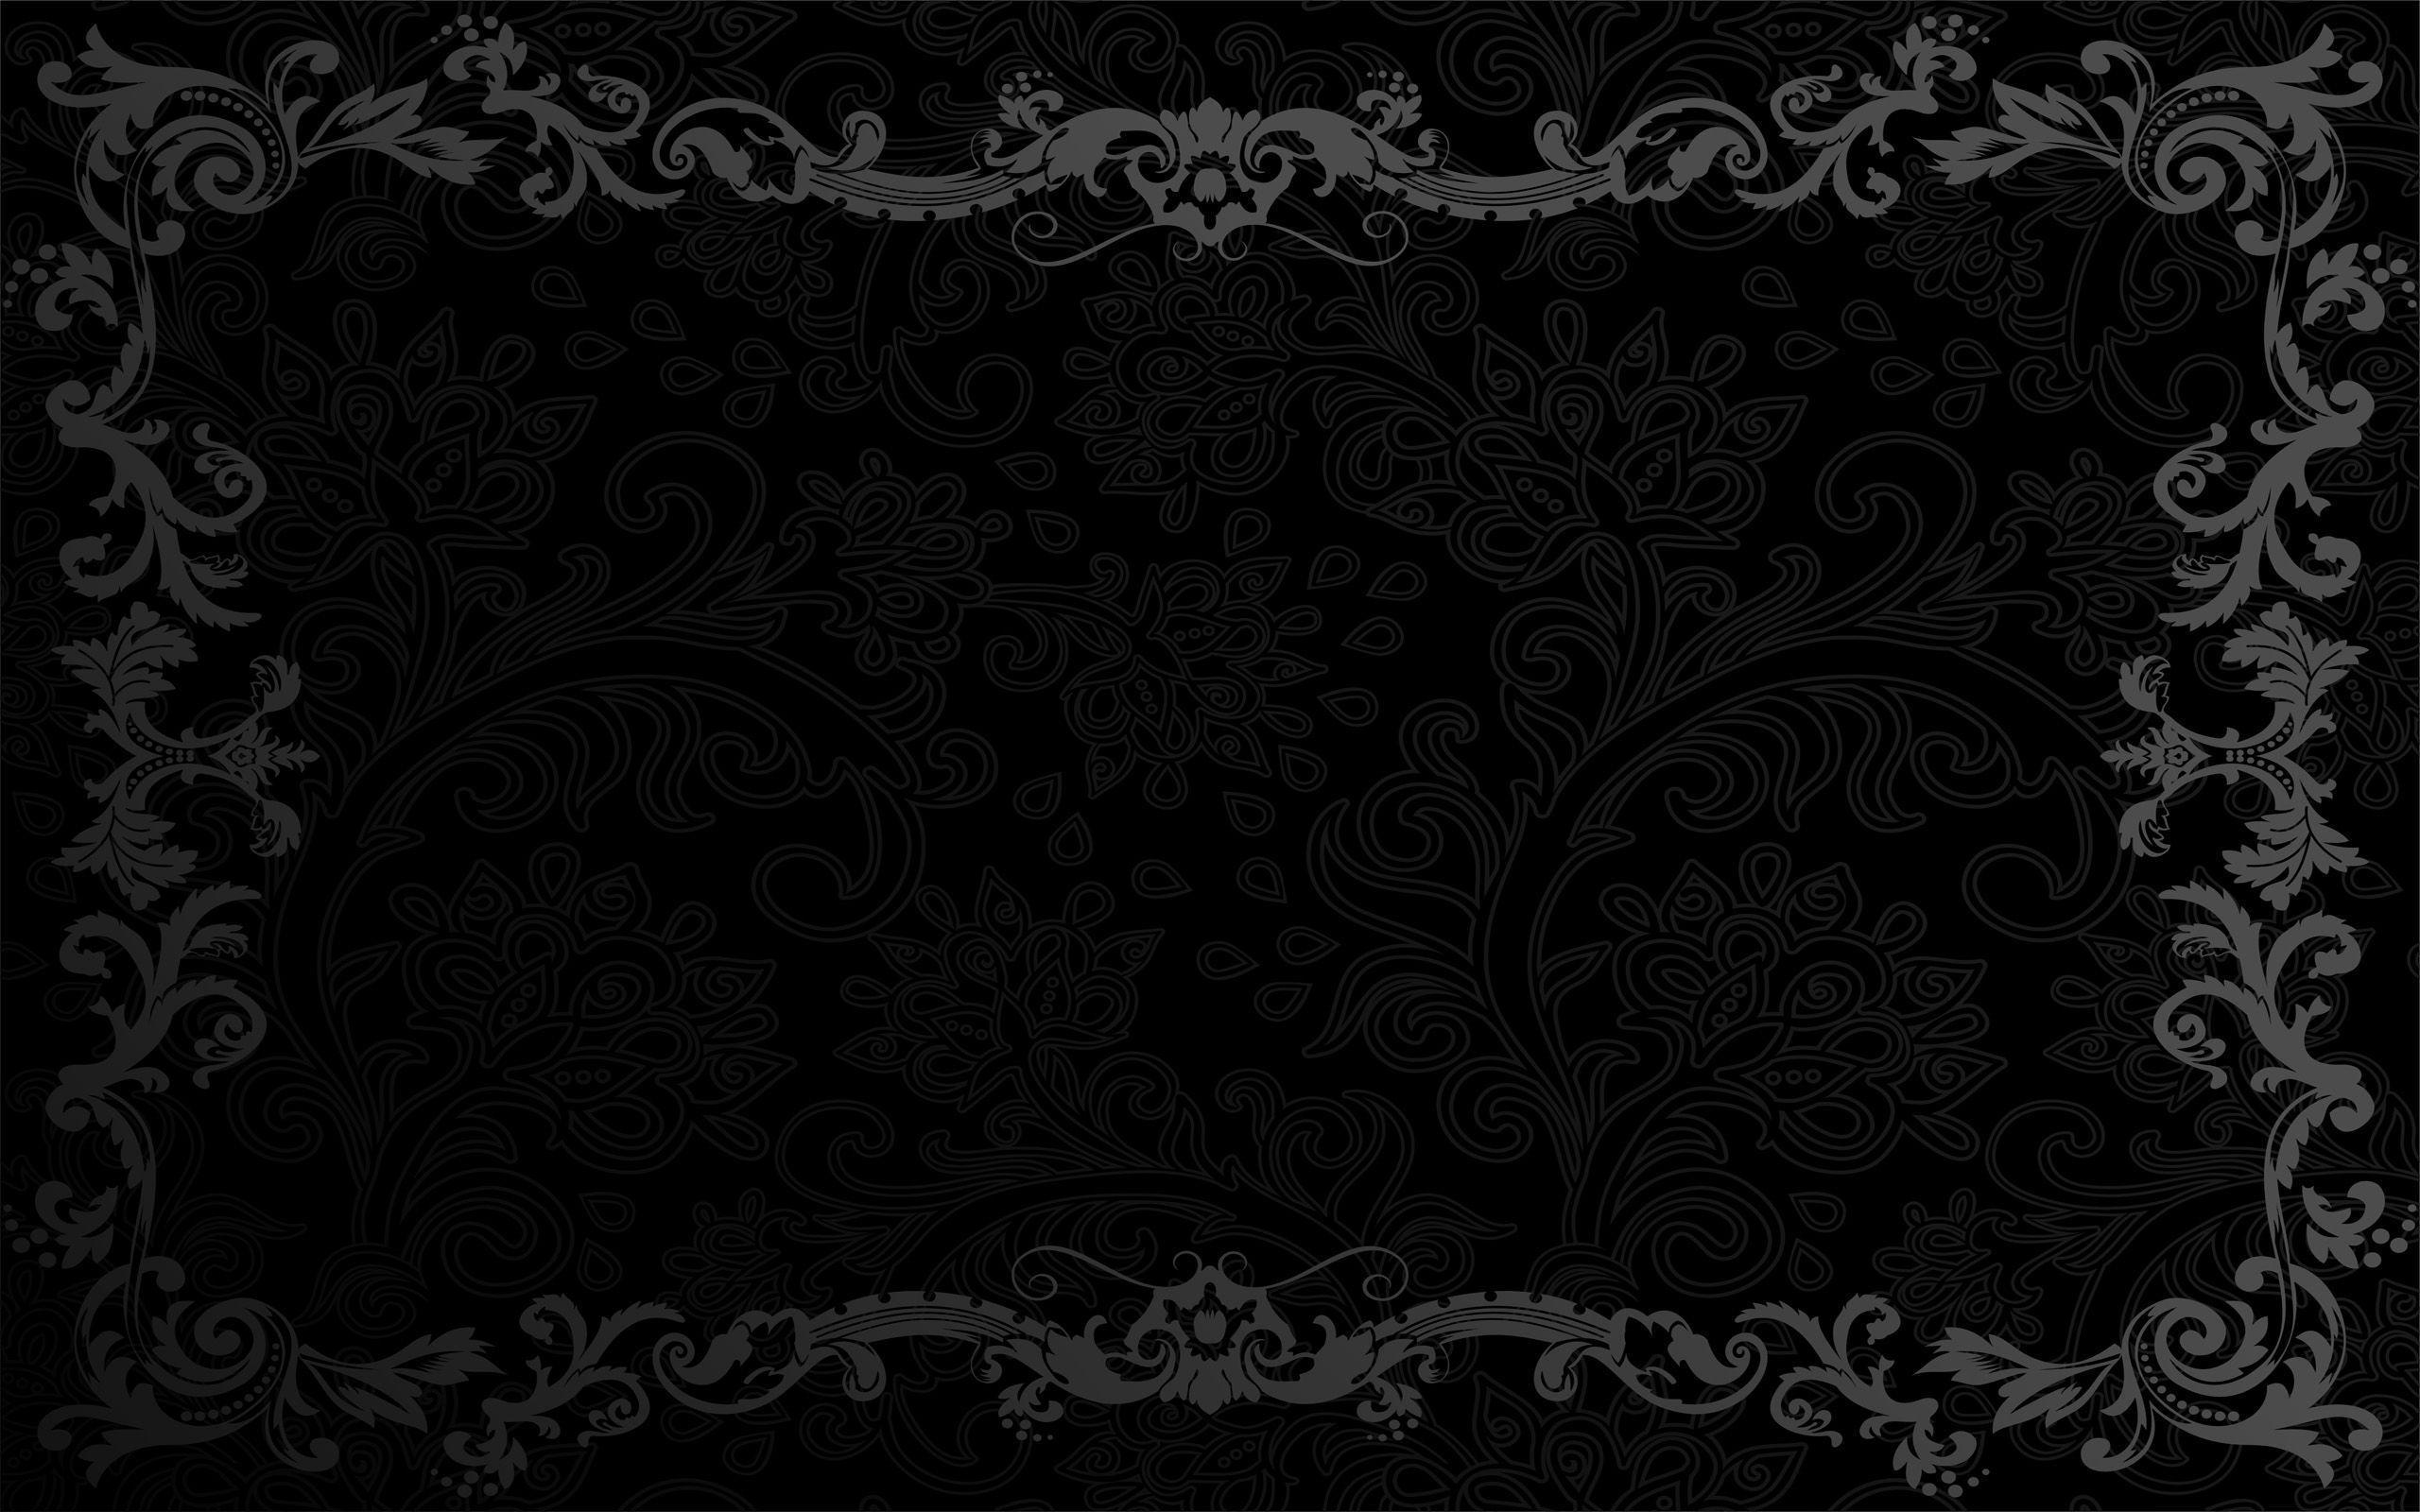 Black Computer Wallpapers, Desktop Backgrounds 2560x1600 Id: 330082